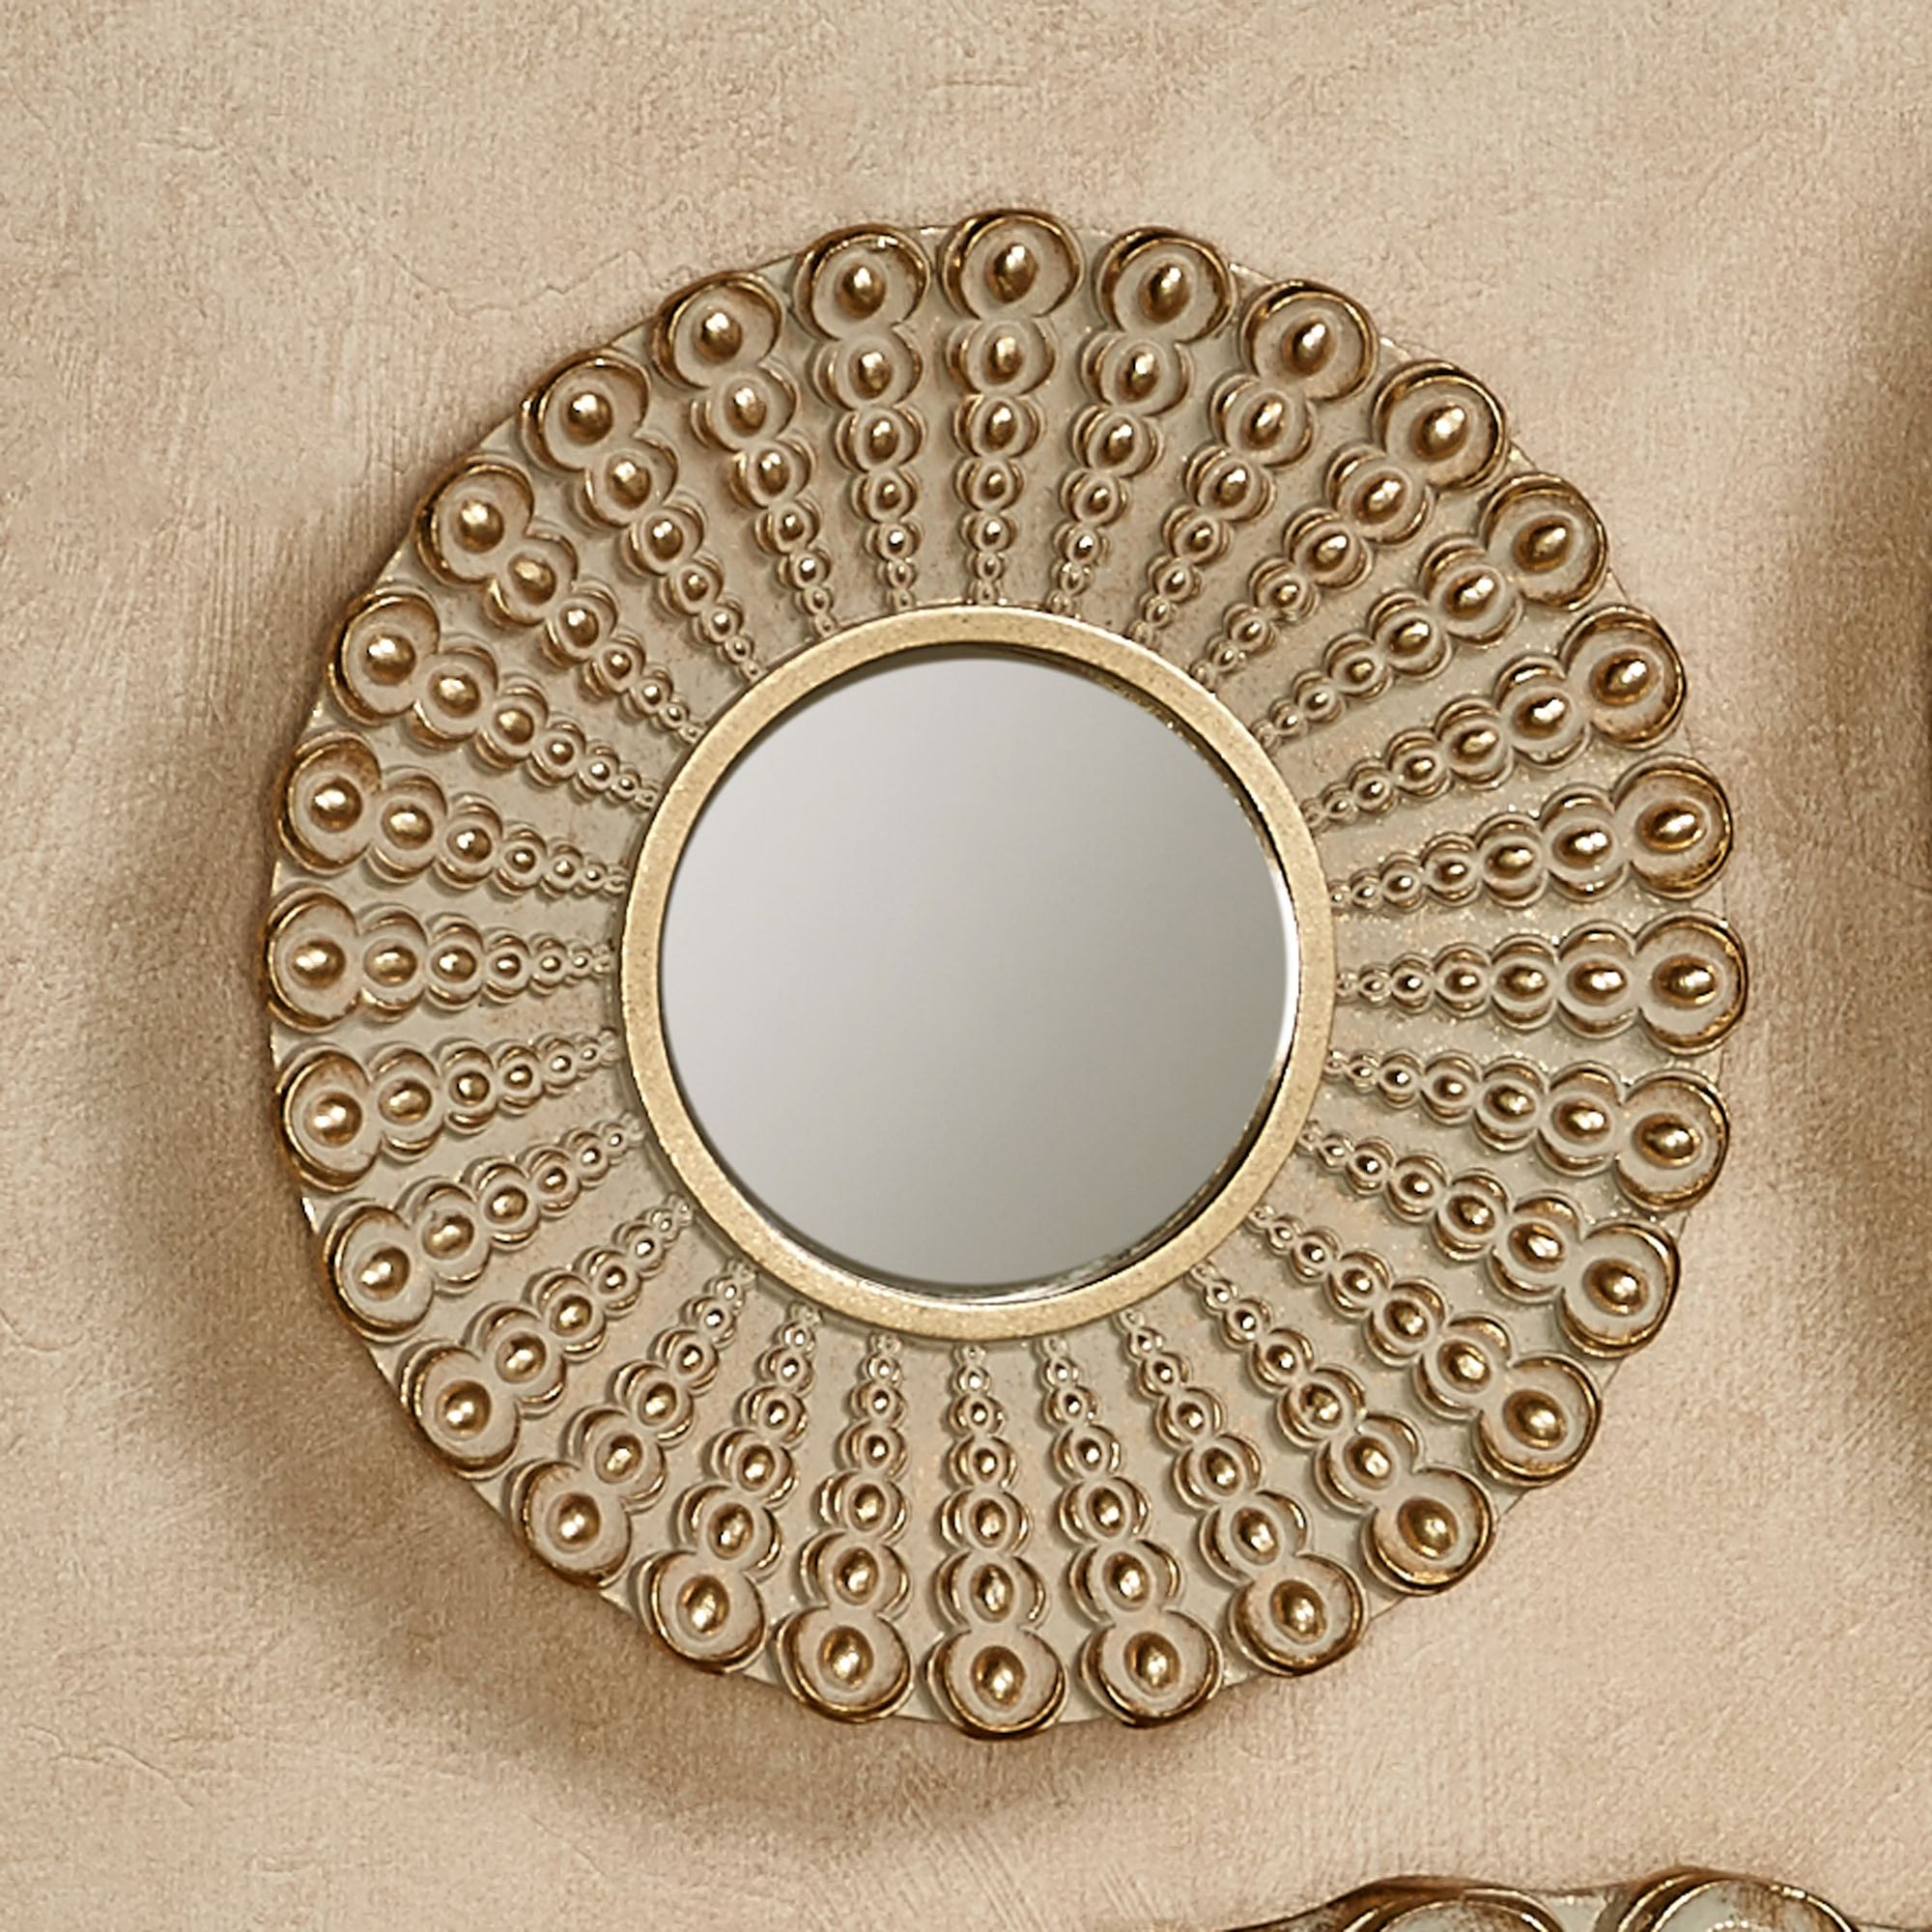 Round Wall Decor Alexander Beaded Round Wall Decor